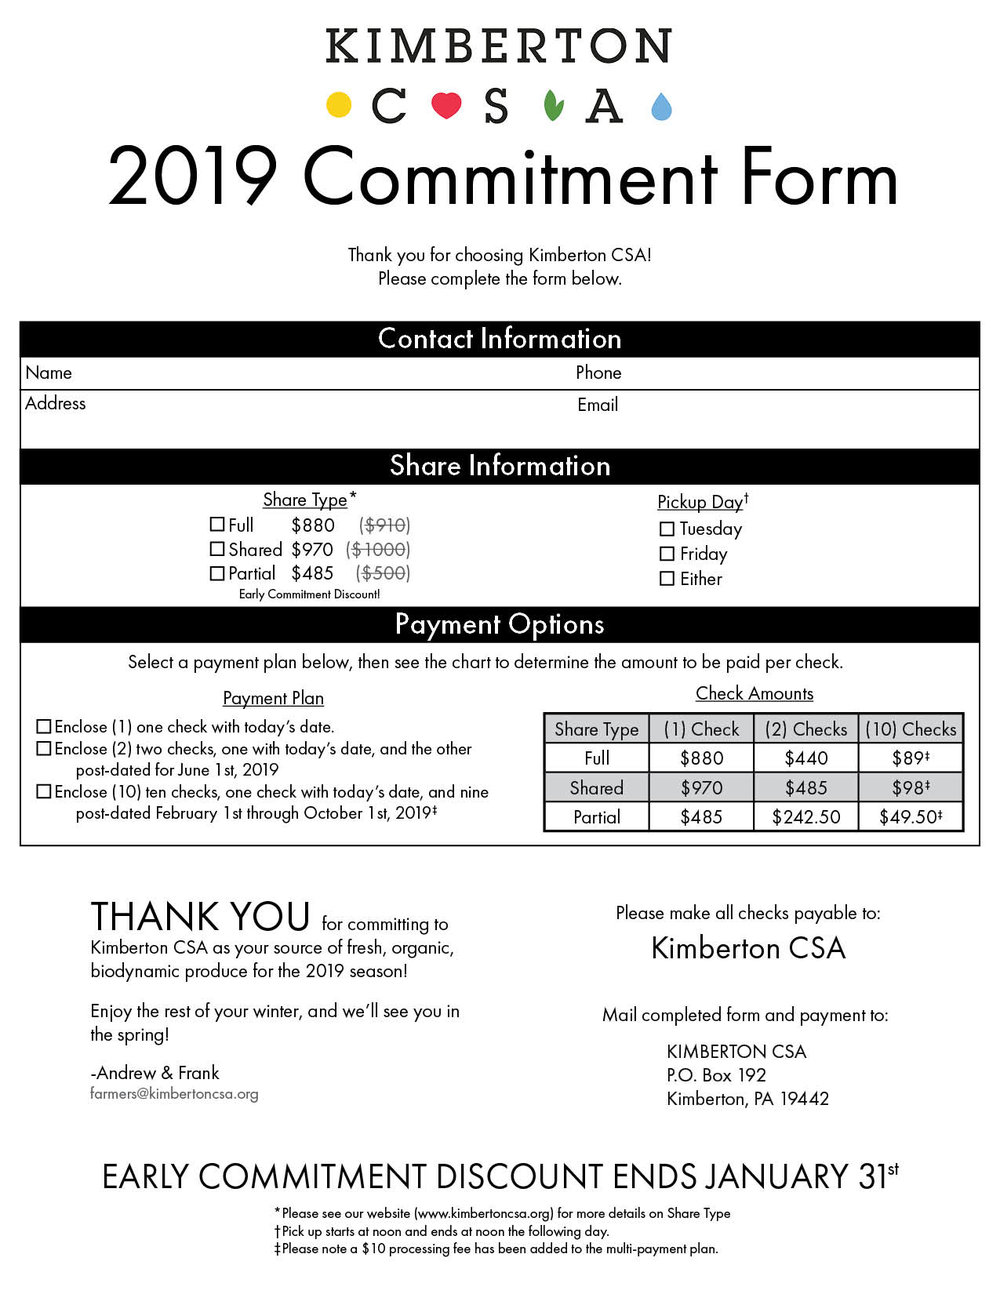 2019 Commitment Form Early Commitment.jpg